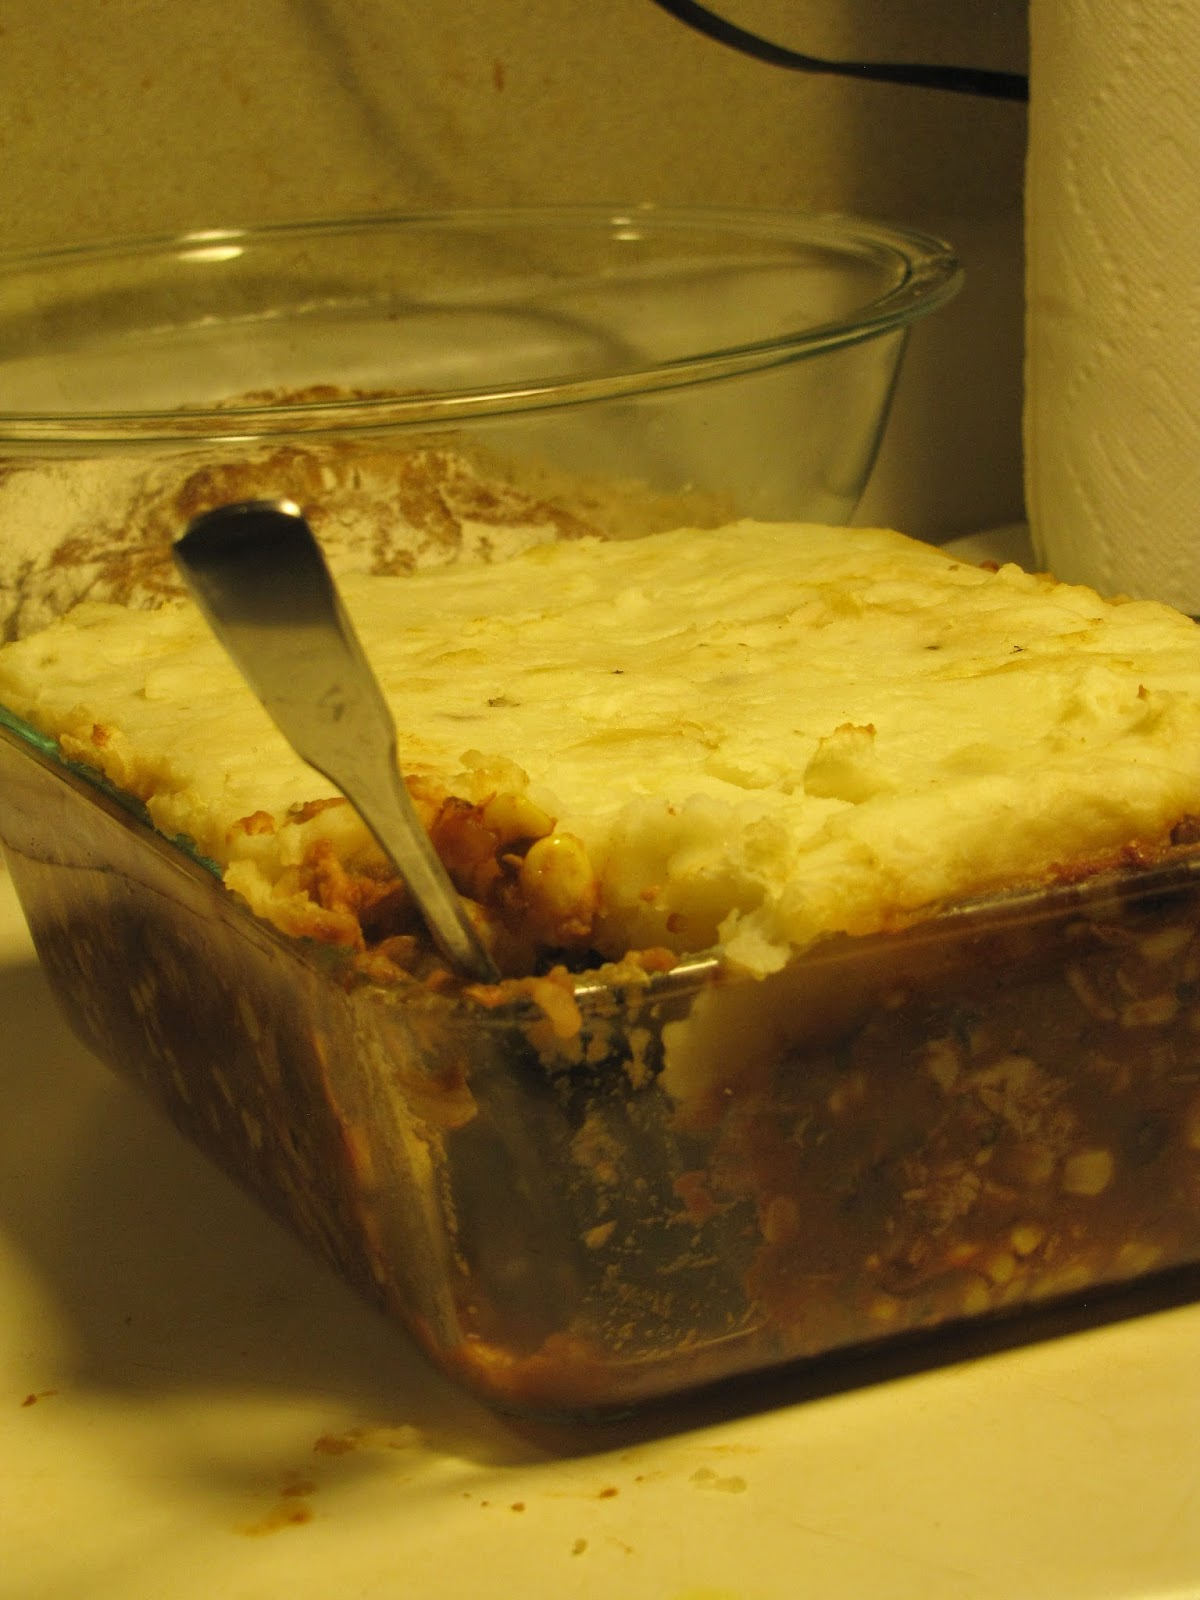 A fork in dish of just baked chicken chili pie, a spin on the traditional sheperd's pie